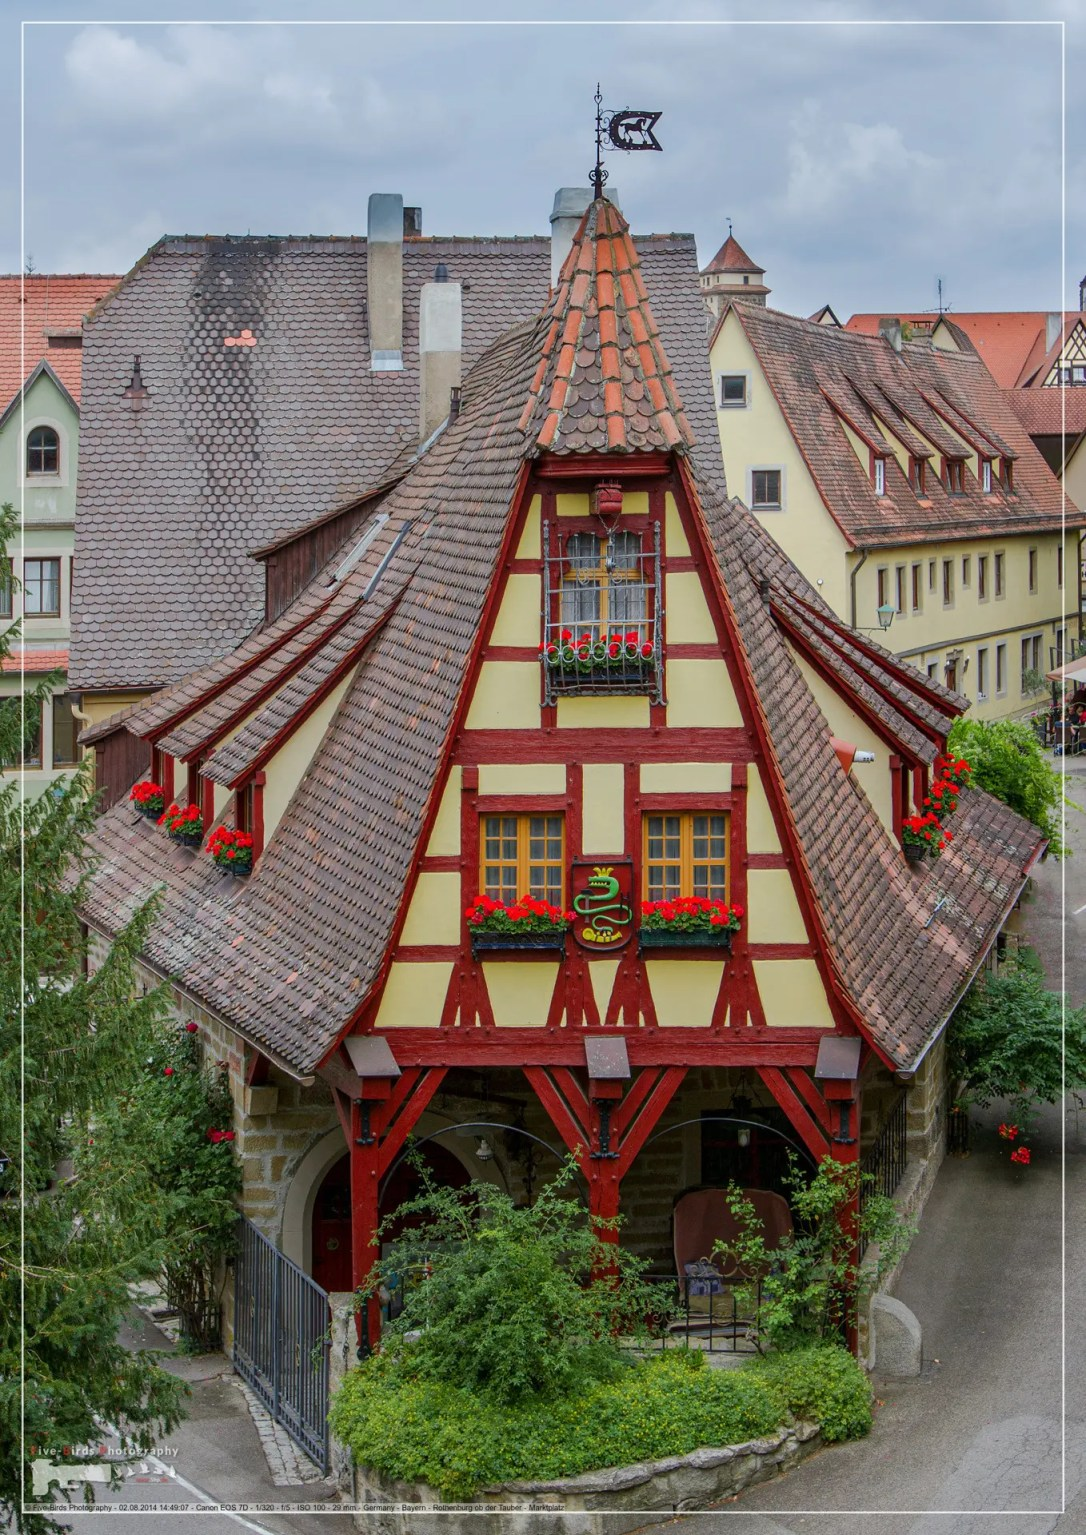 Houses in the old town of Rothenburg ob der Tauber in Bavaria